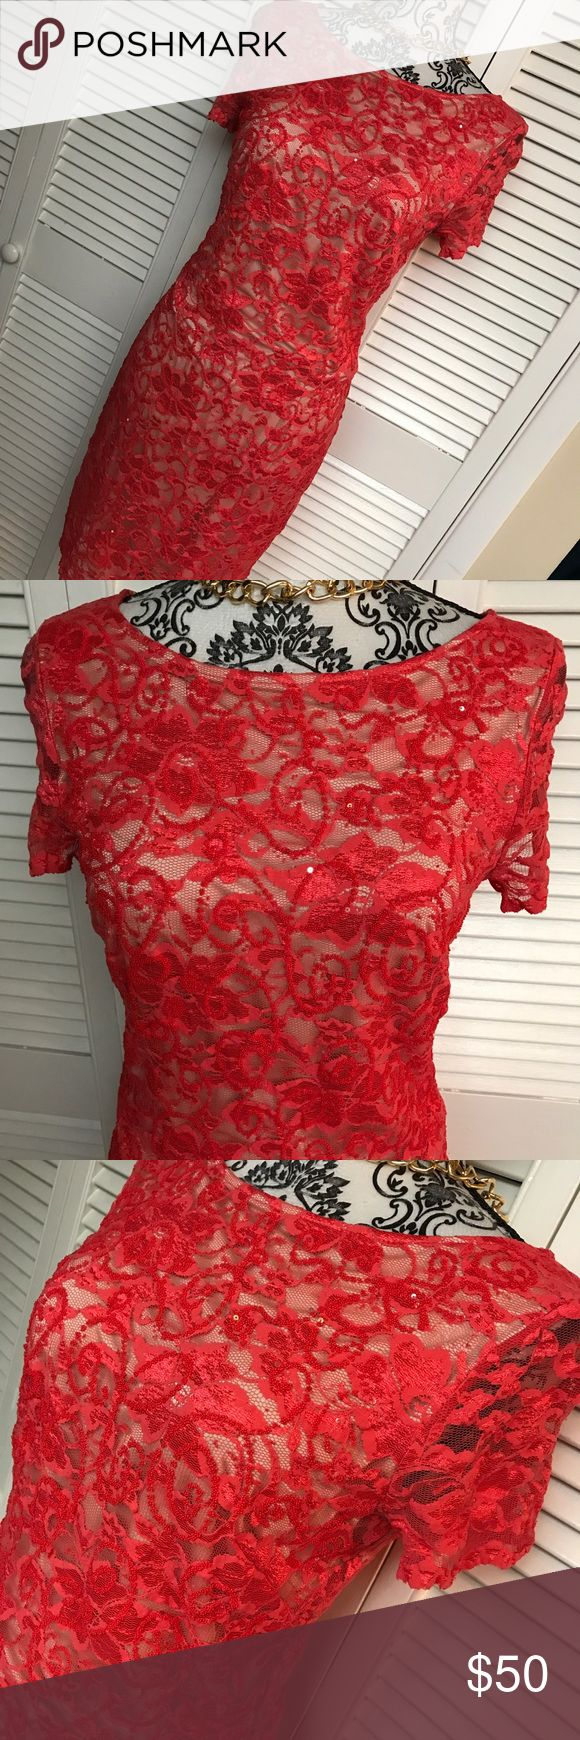 Saks off 5th avenue dress Alexia admor dress  Brand new without tags  Size med  Fully lined  Red lace with sequins  Tons of stretch Saks Fifth Avenue Dresses